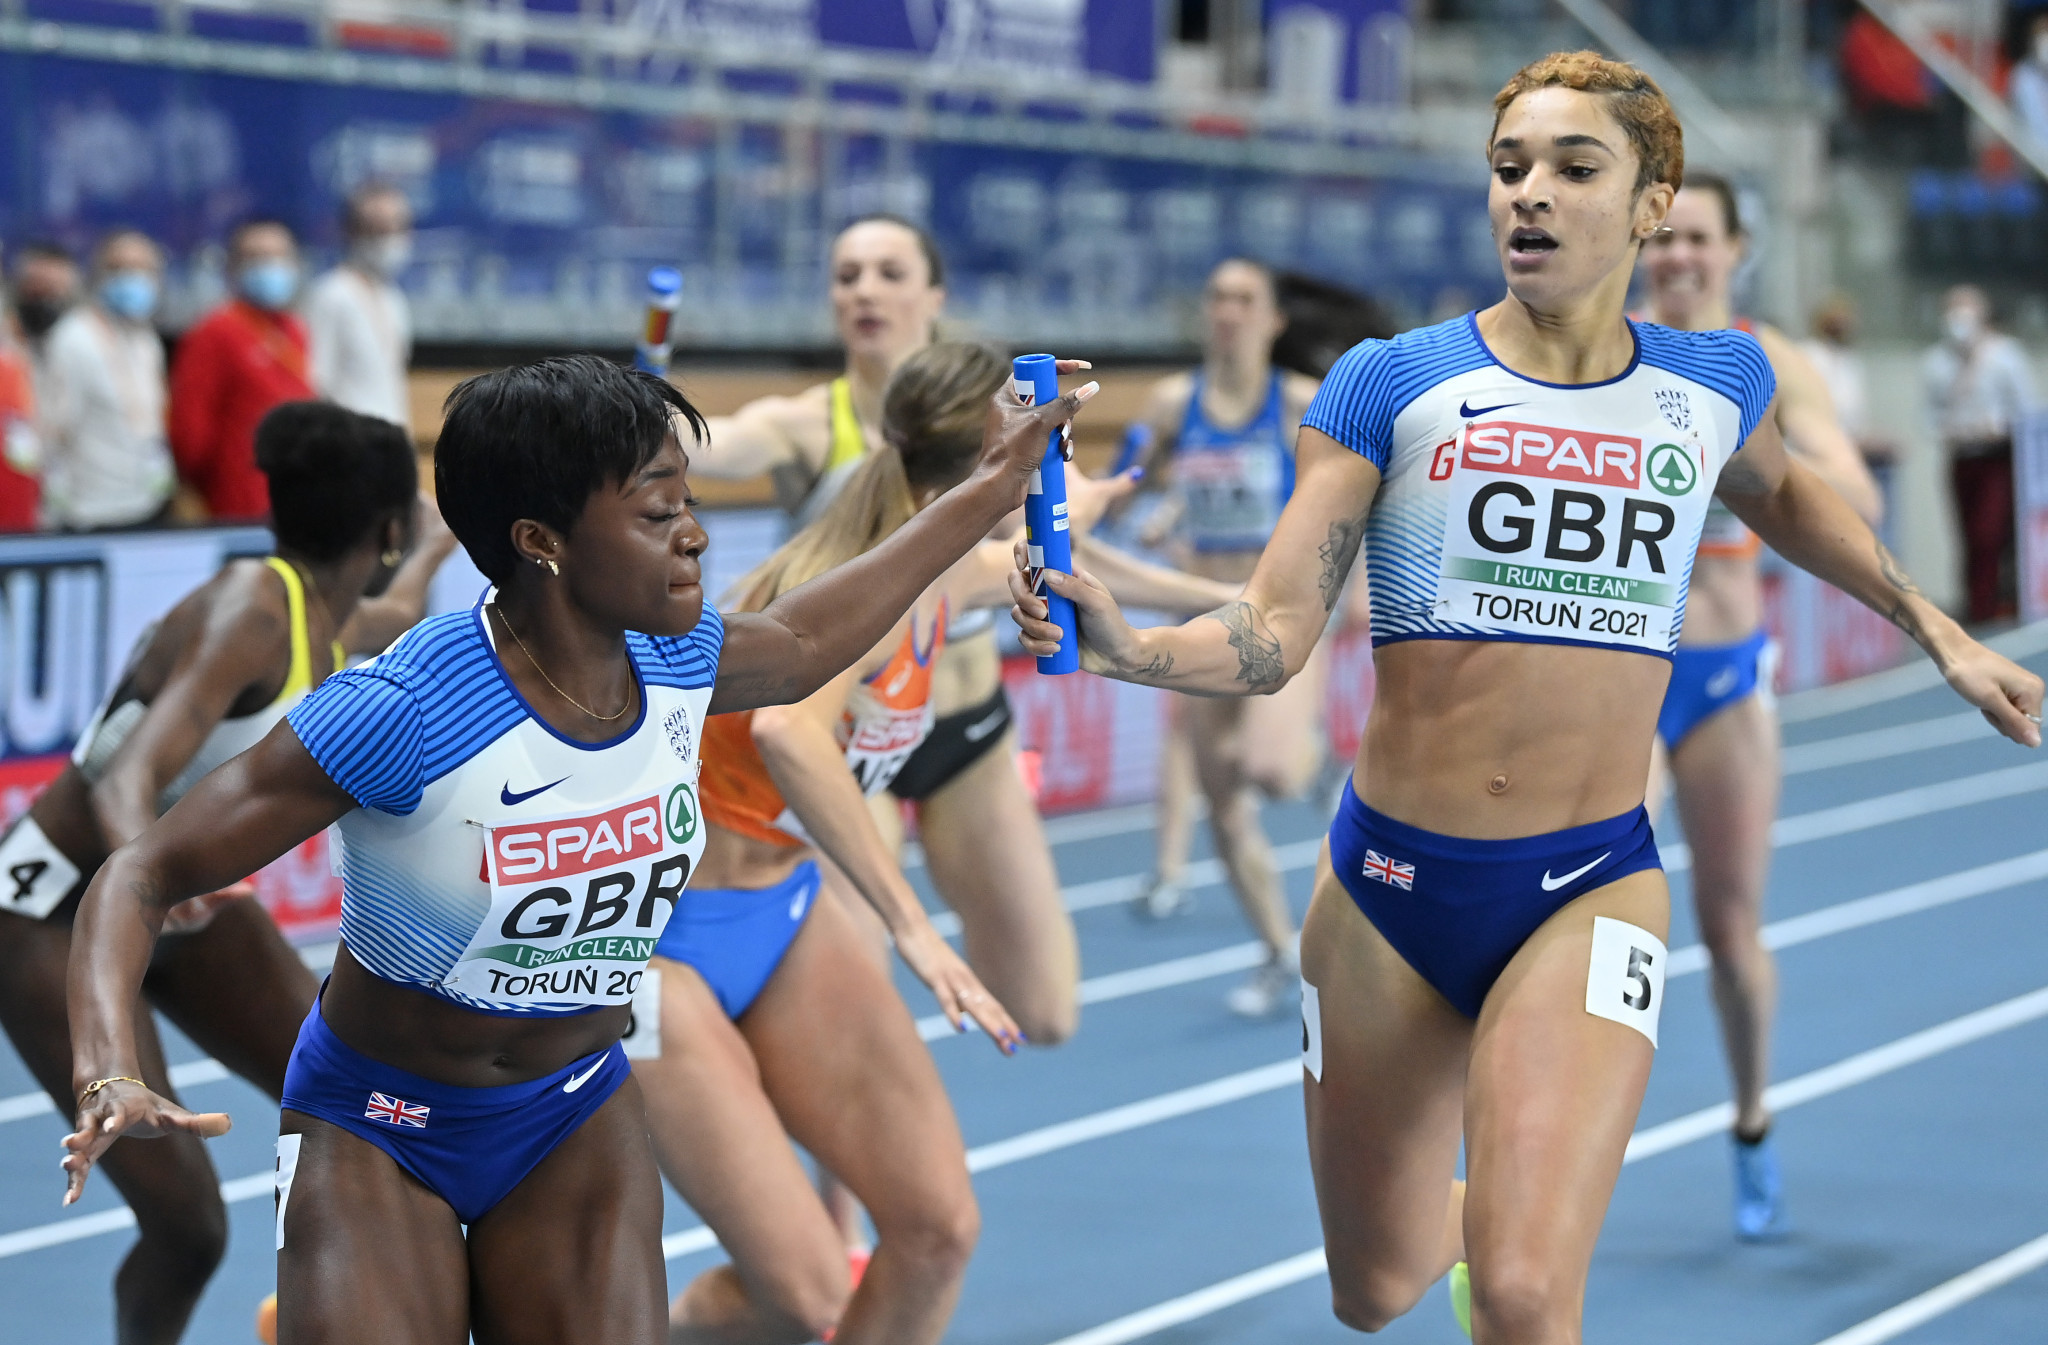 All 46 members of the British travelling party returning from the European Athletics Indoor Championships in Torun are having to quarantine for 10 days after one of their number tested positive for COVID-19 ©Getty Images